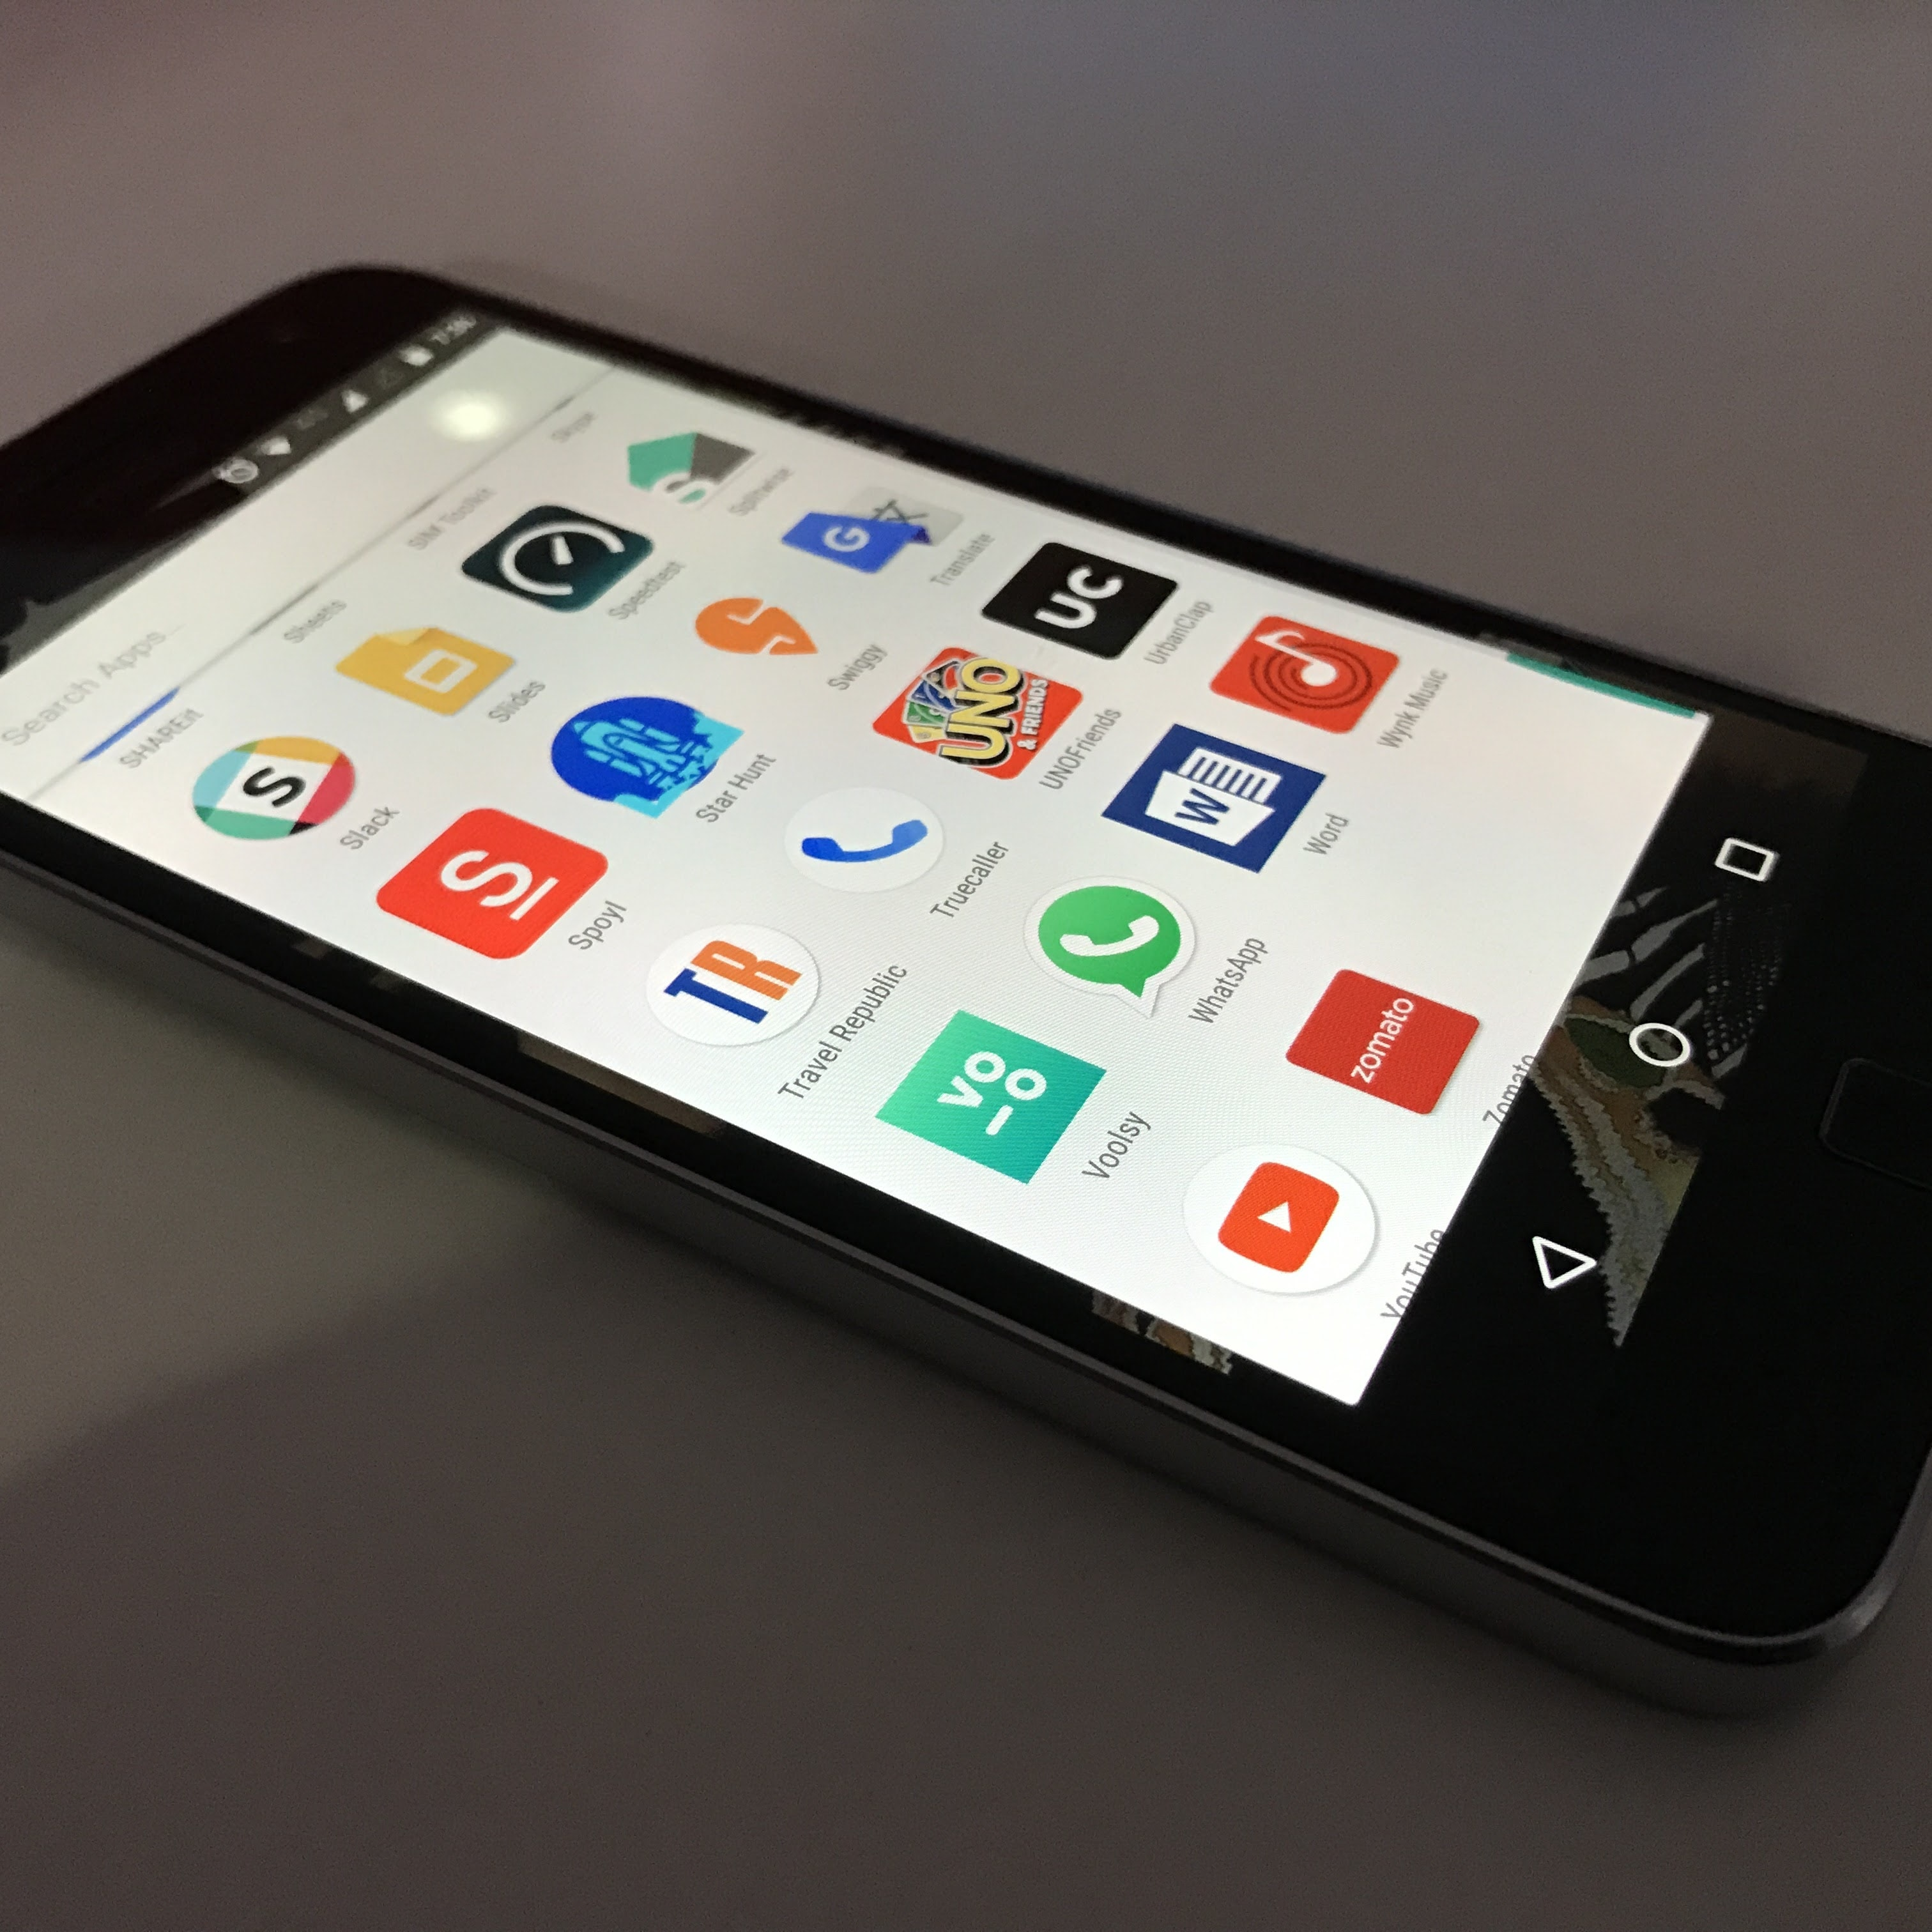 A smartphone with Android with a homescreen showing various apps including Slack, Splitewise, Uno, Word, WhatsApp, and YouTube